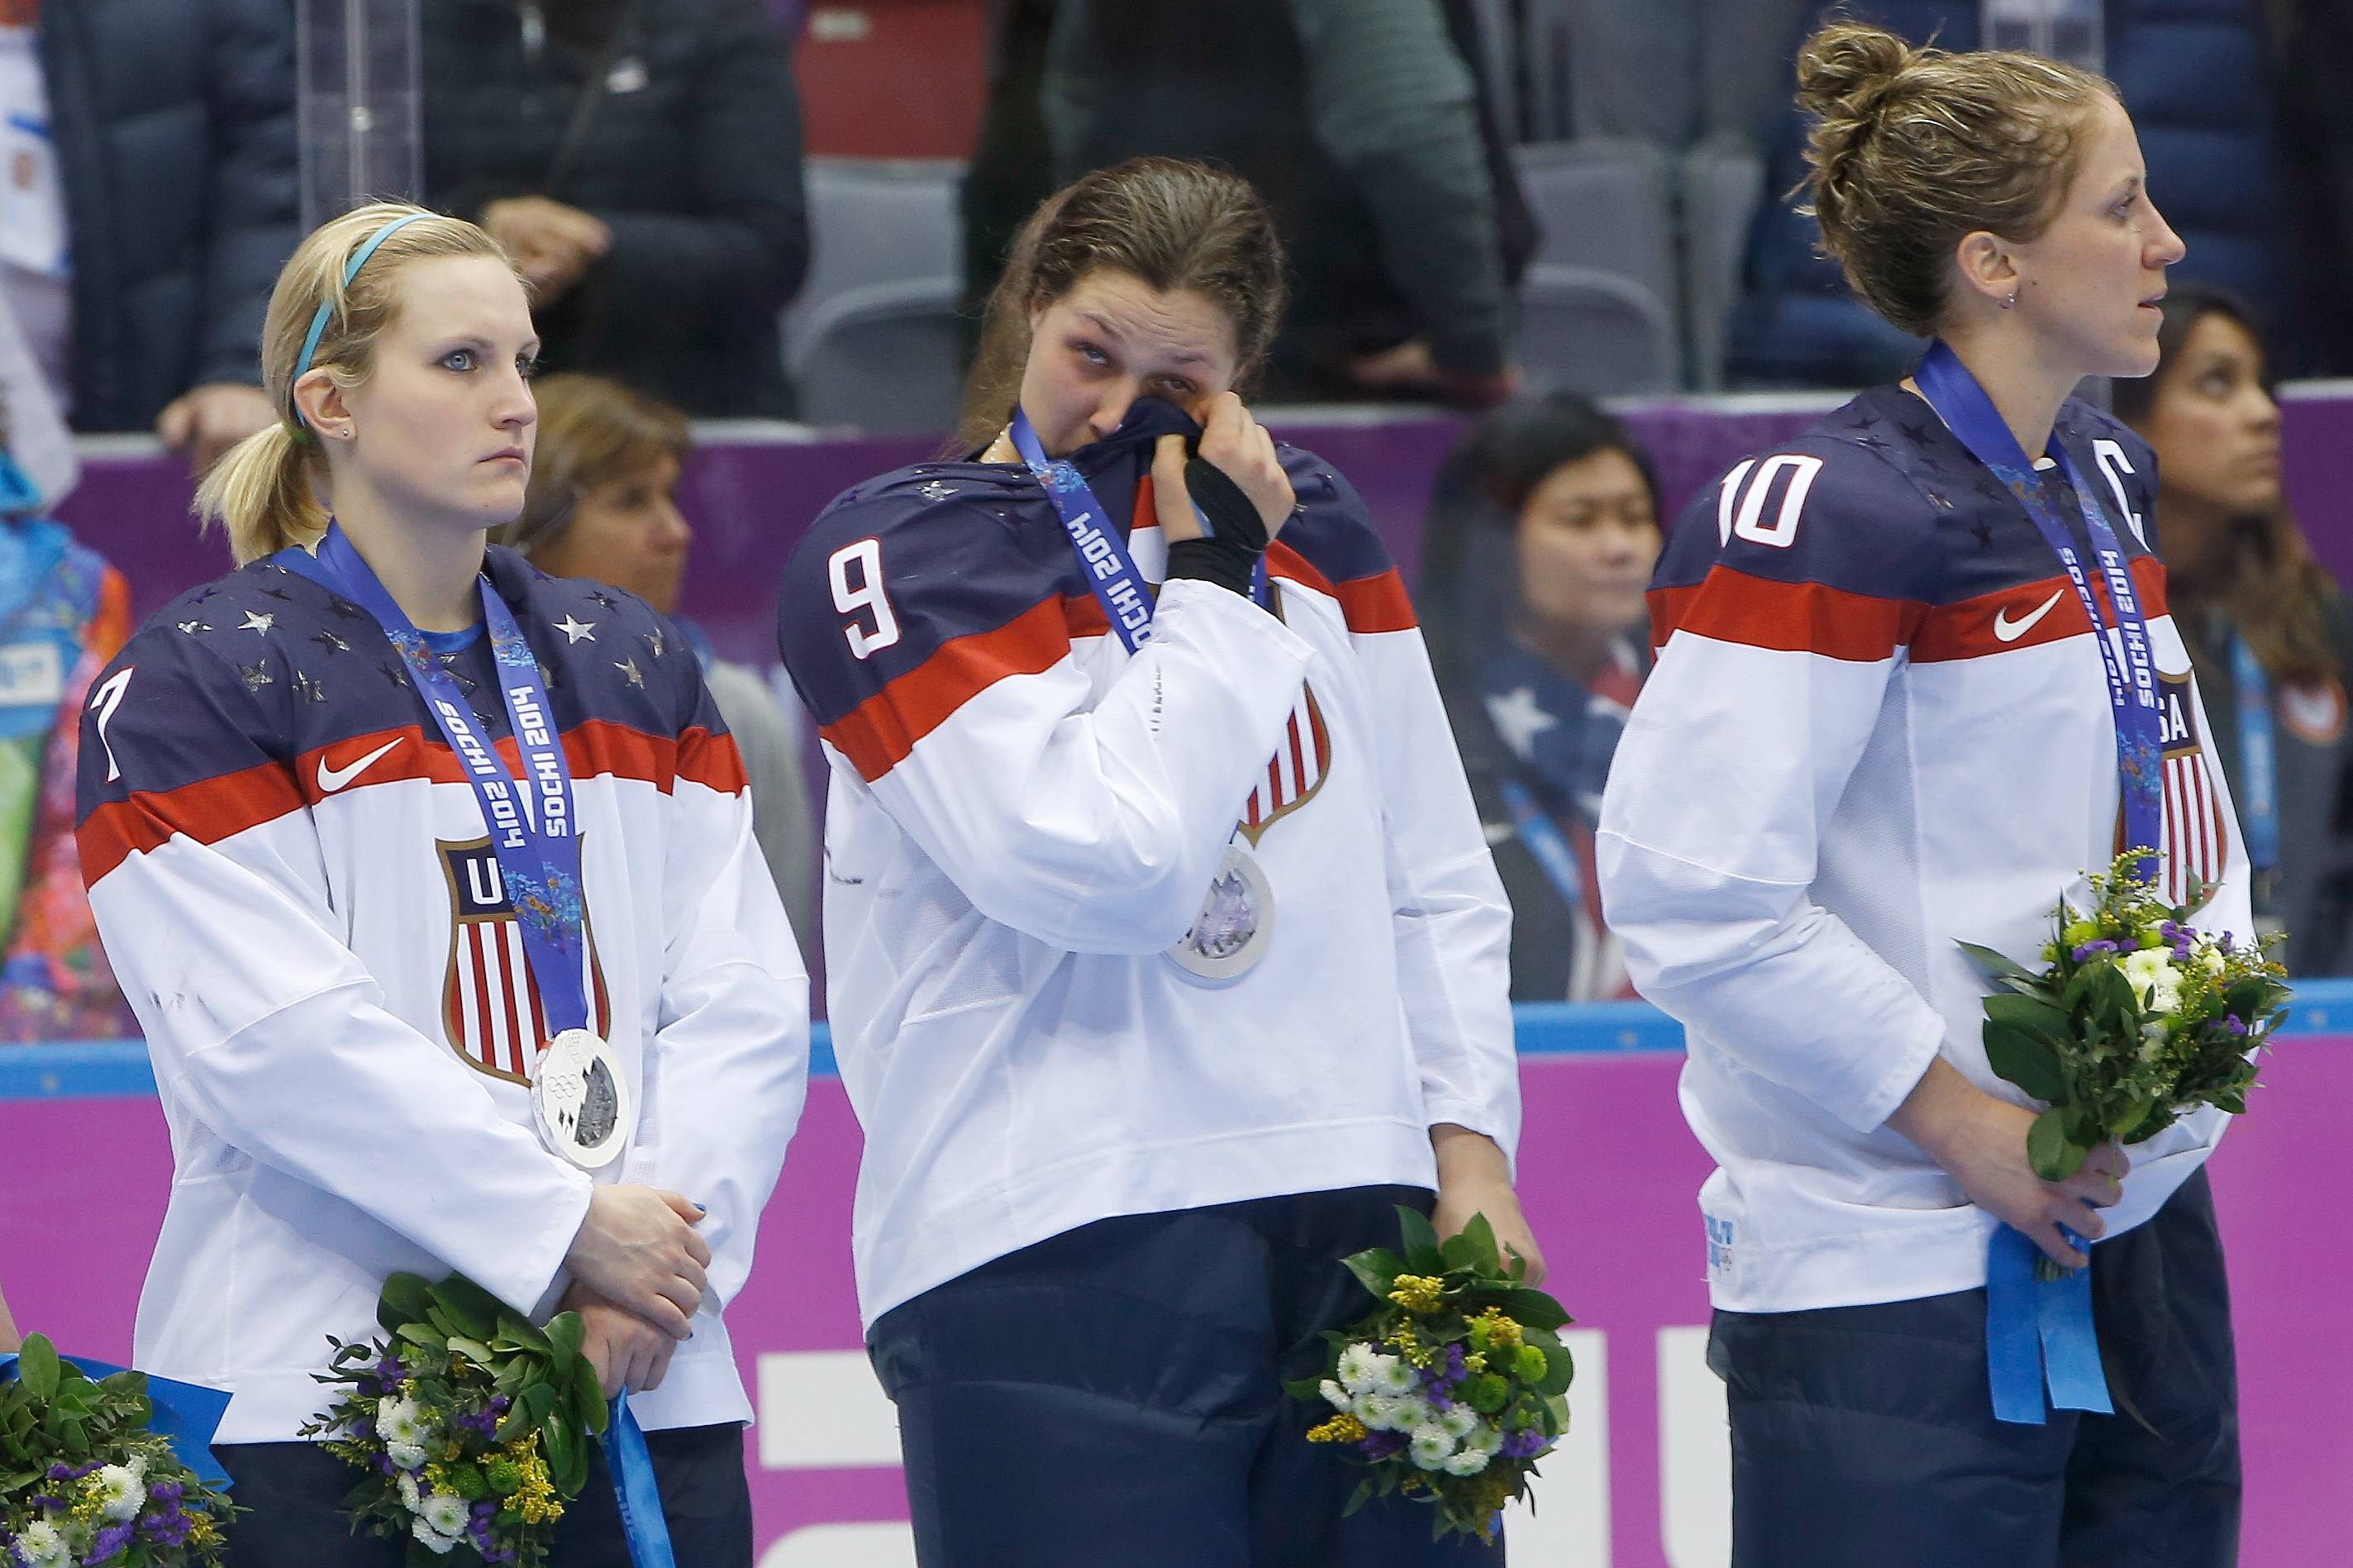 Megan Bozek of the United States (9) wipes a tear as she stand with Monique Lamoureux of the United States (7),  and Meghan Duggan of the United States (10) during the medal ceremony for women's ice hockey.